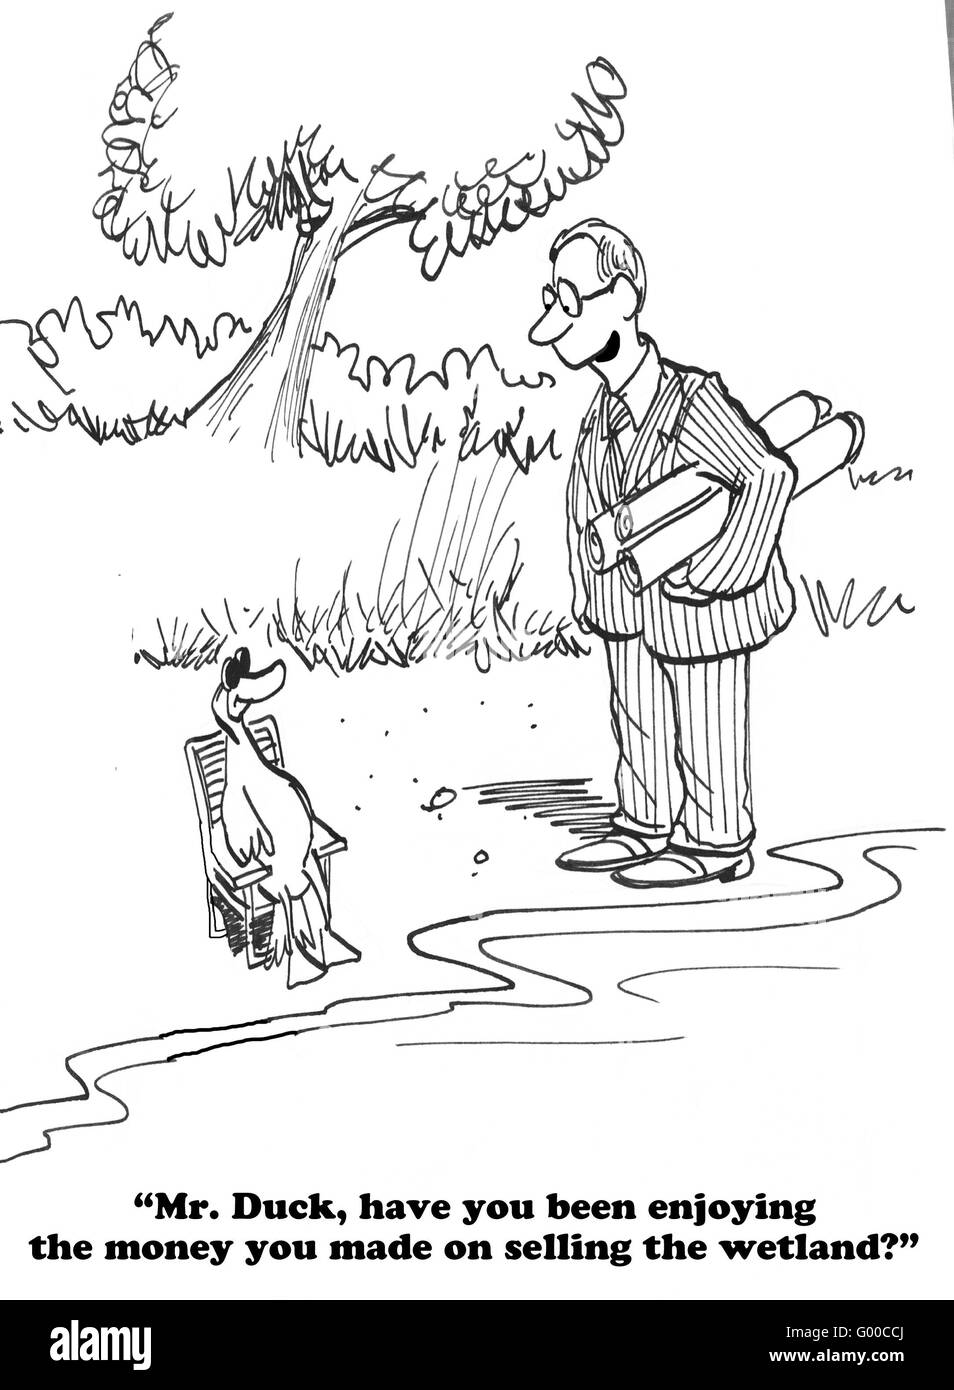 Cartoon About Endangering The Natural Environment